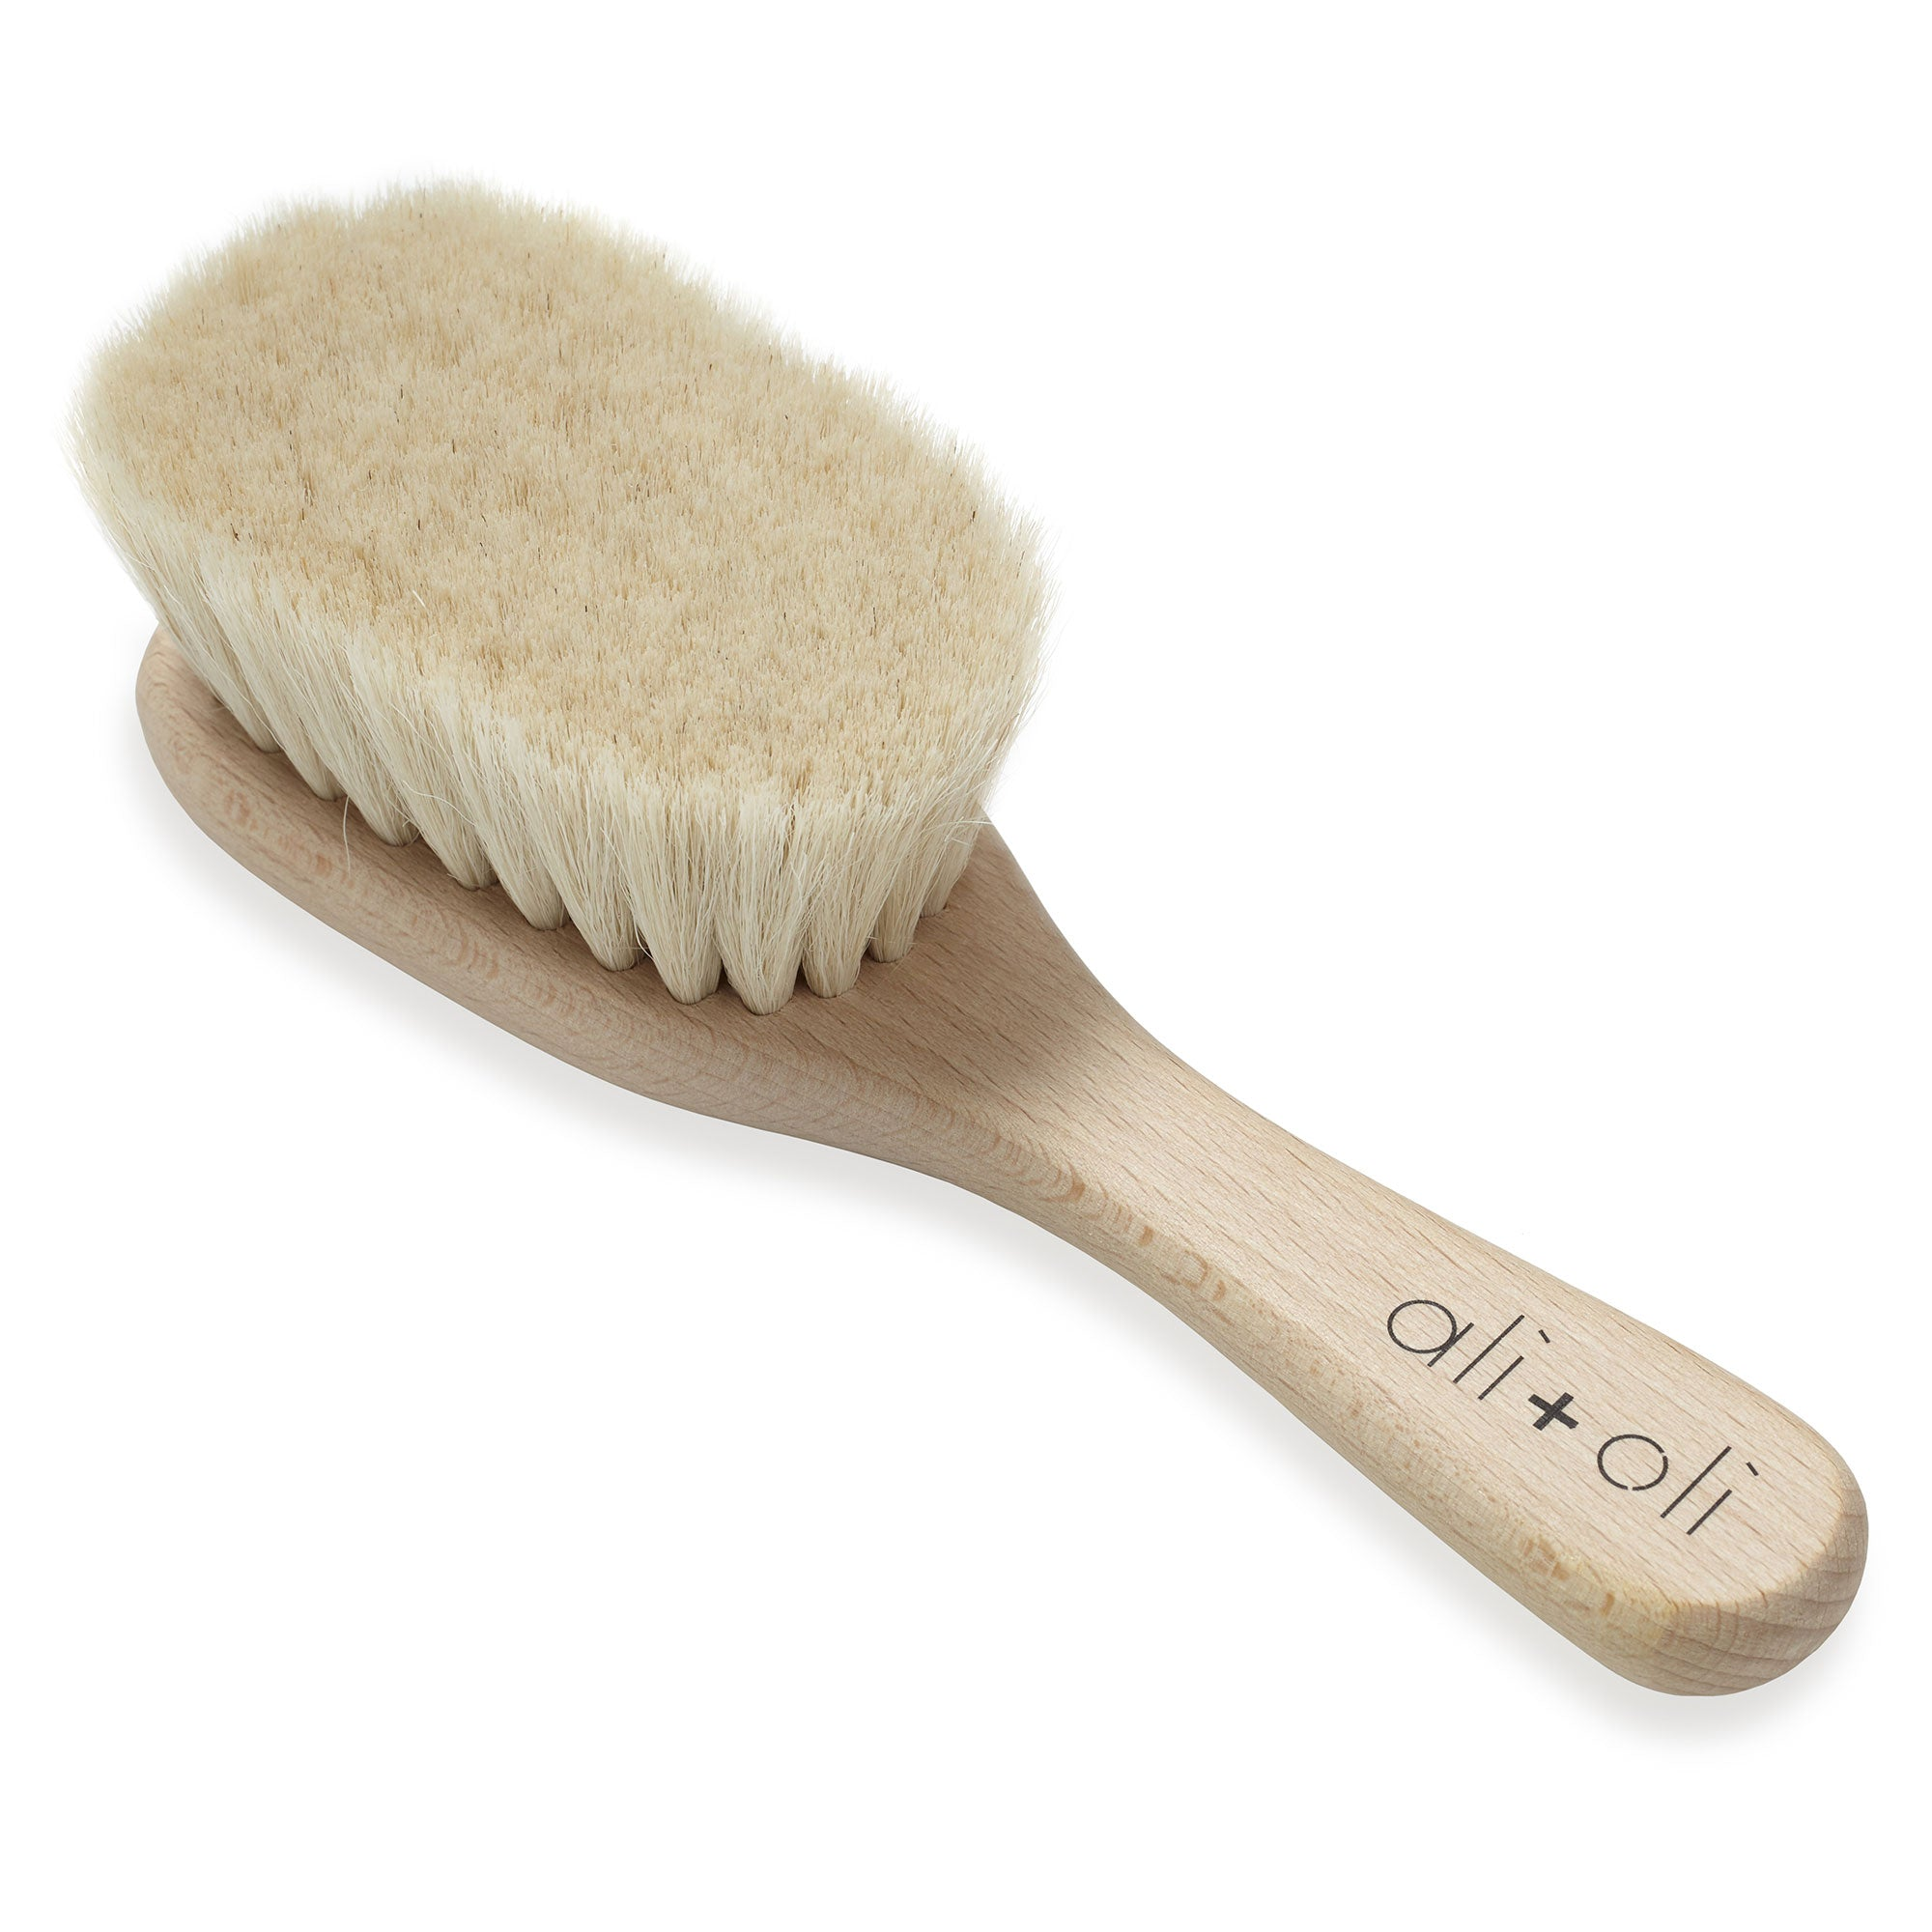 Newborn baby brush natural wood and goat hair made in germany